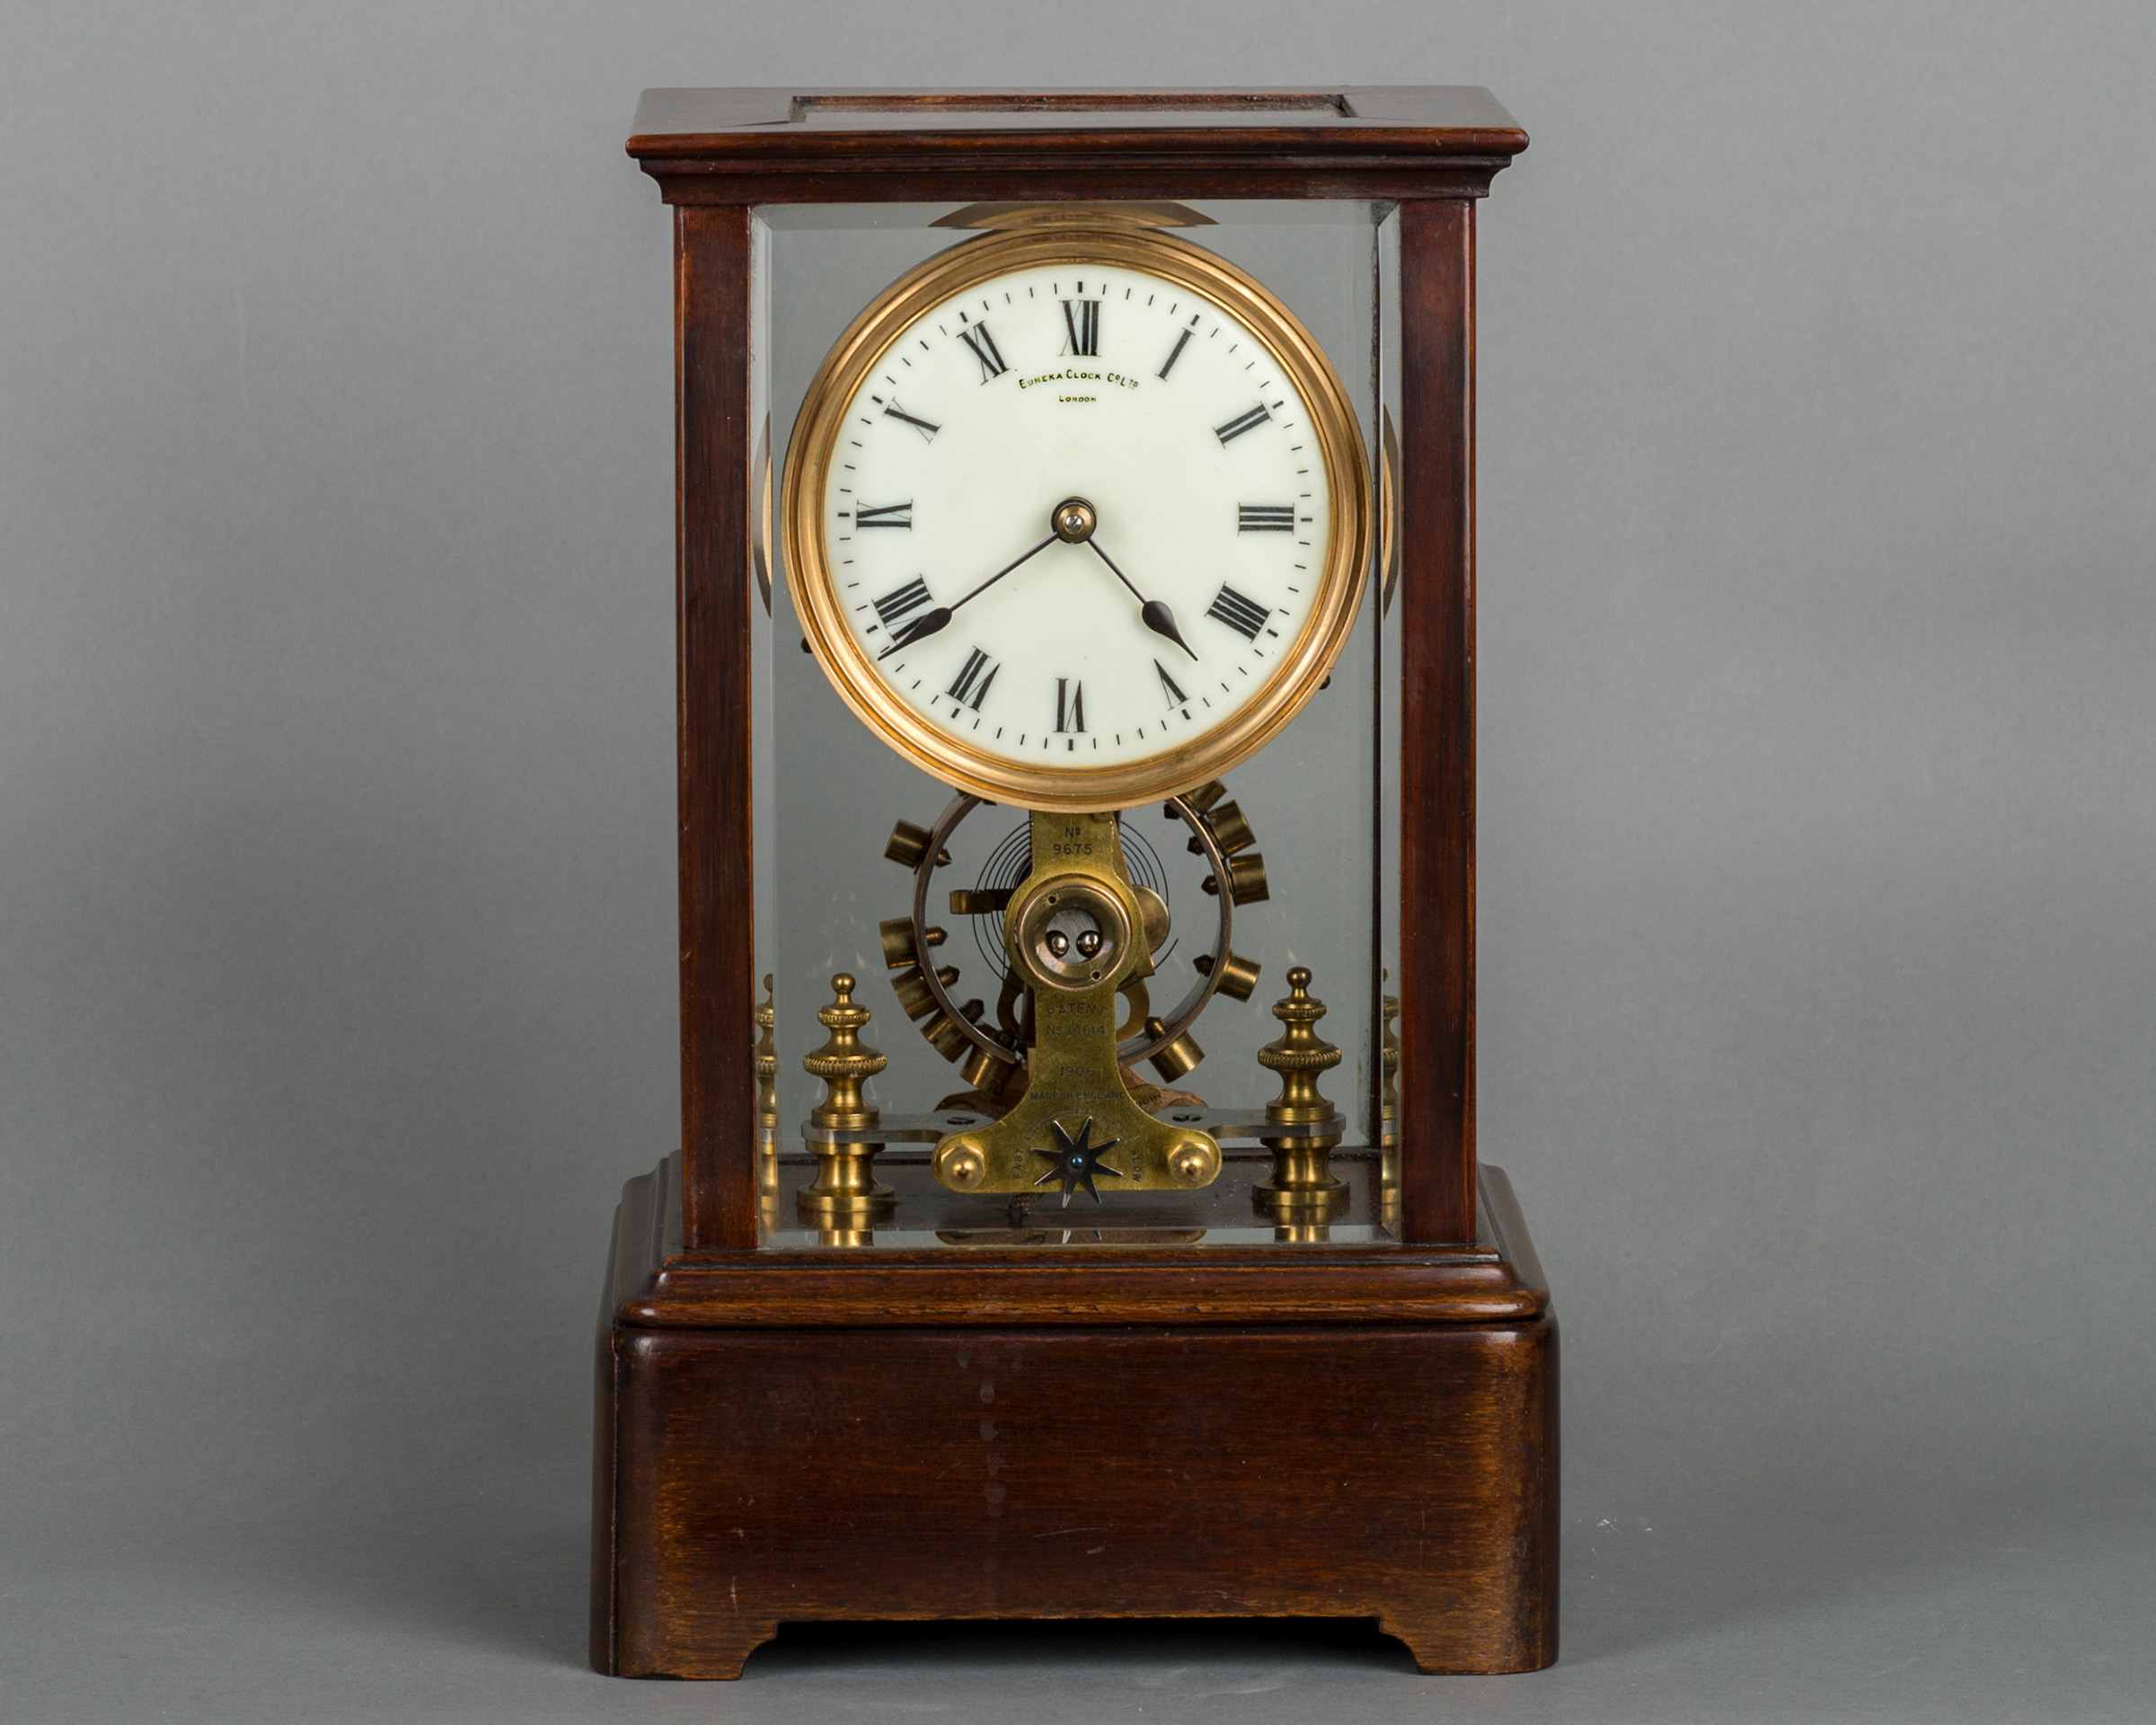 Eureka Clock Co Ltd., a battery powered mahogany mantel clock, circa 1908